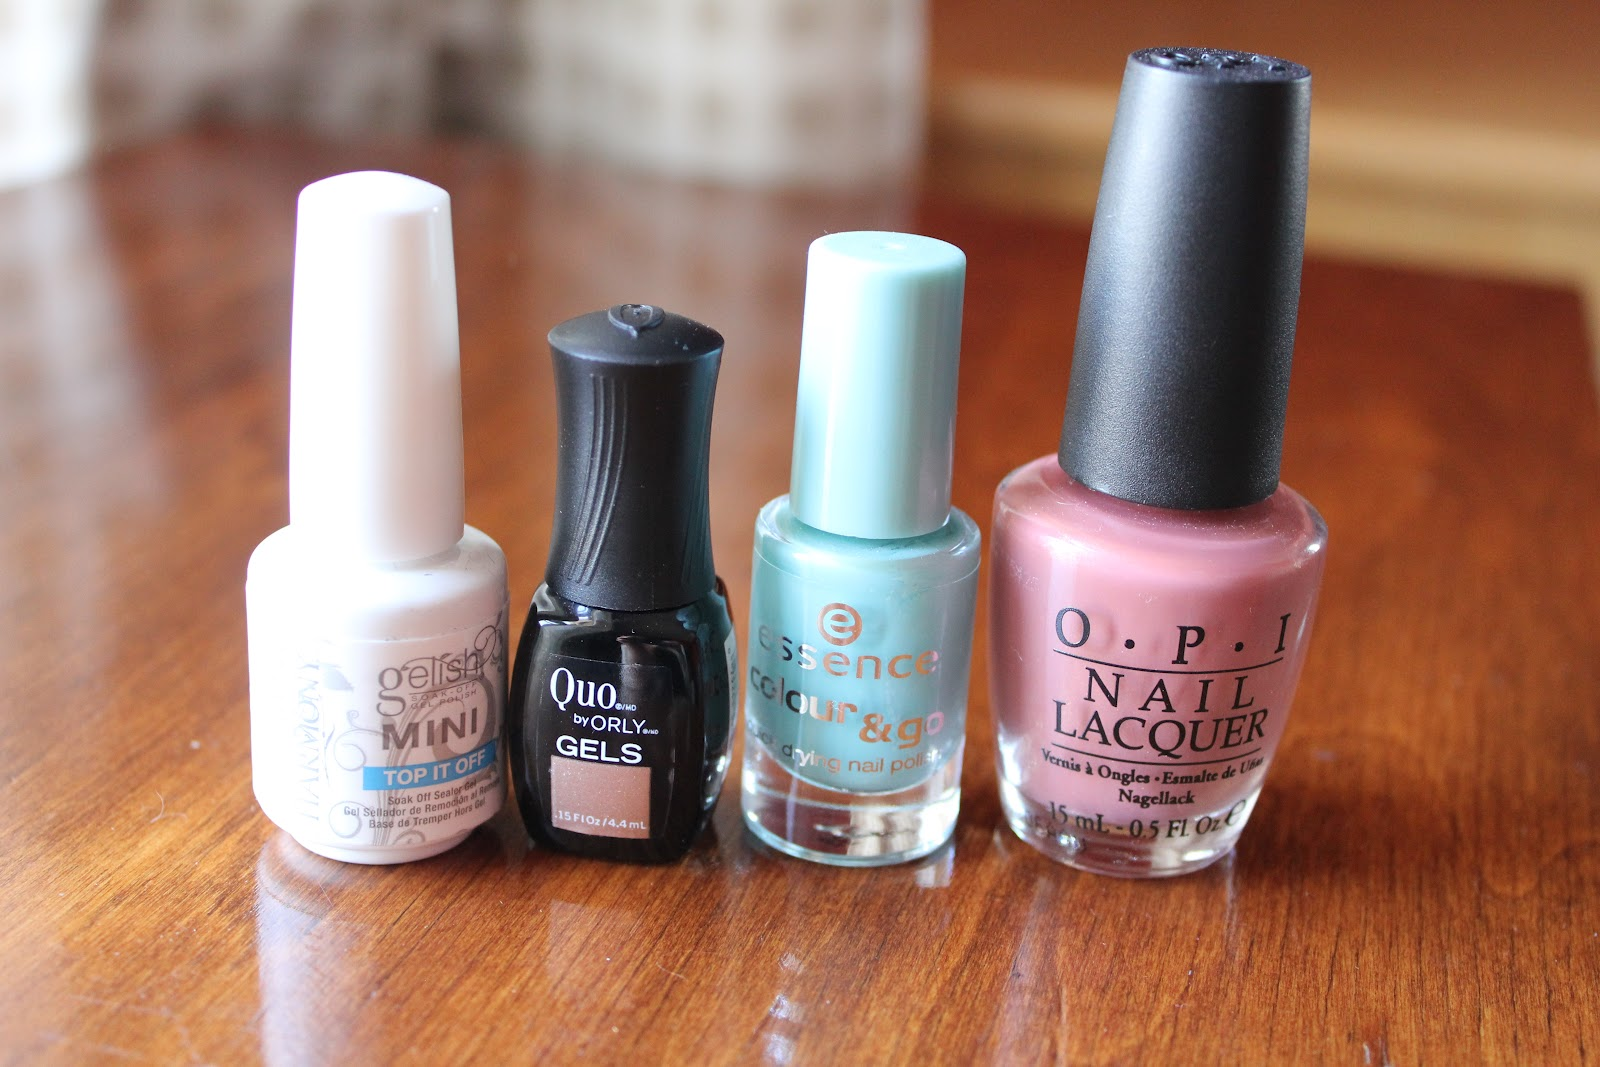 thesmalllittlethingsinlife: QUO by Orly Gels - New nail polish alert!